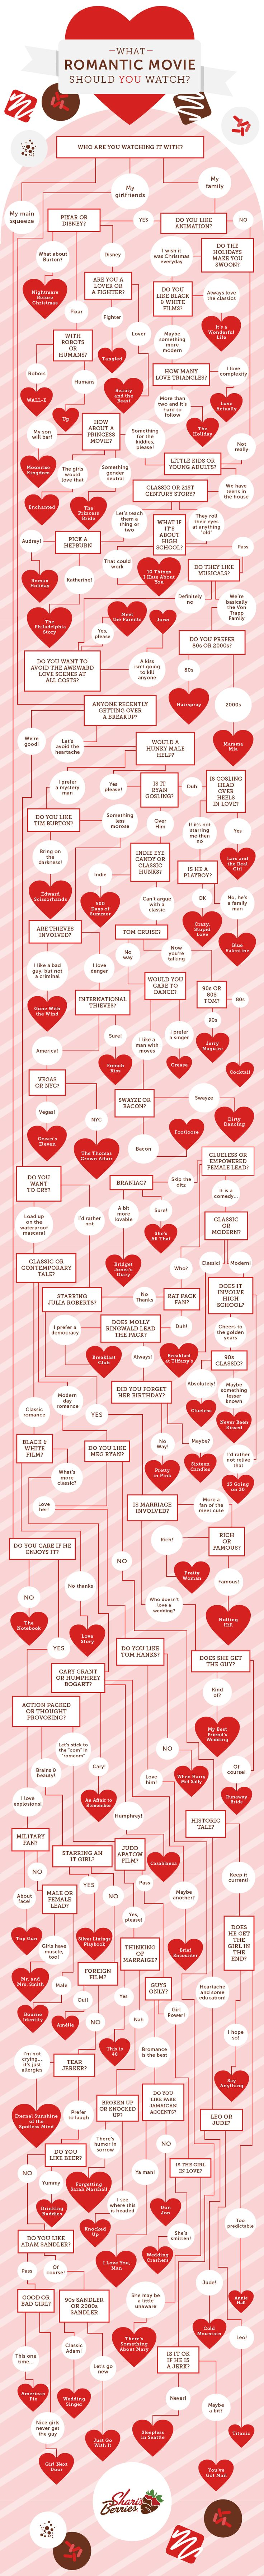 what romantic movie should you watch Follow yonce & get posts on the daily @hayleybyu